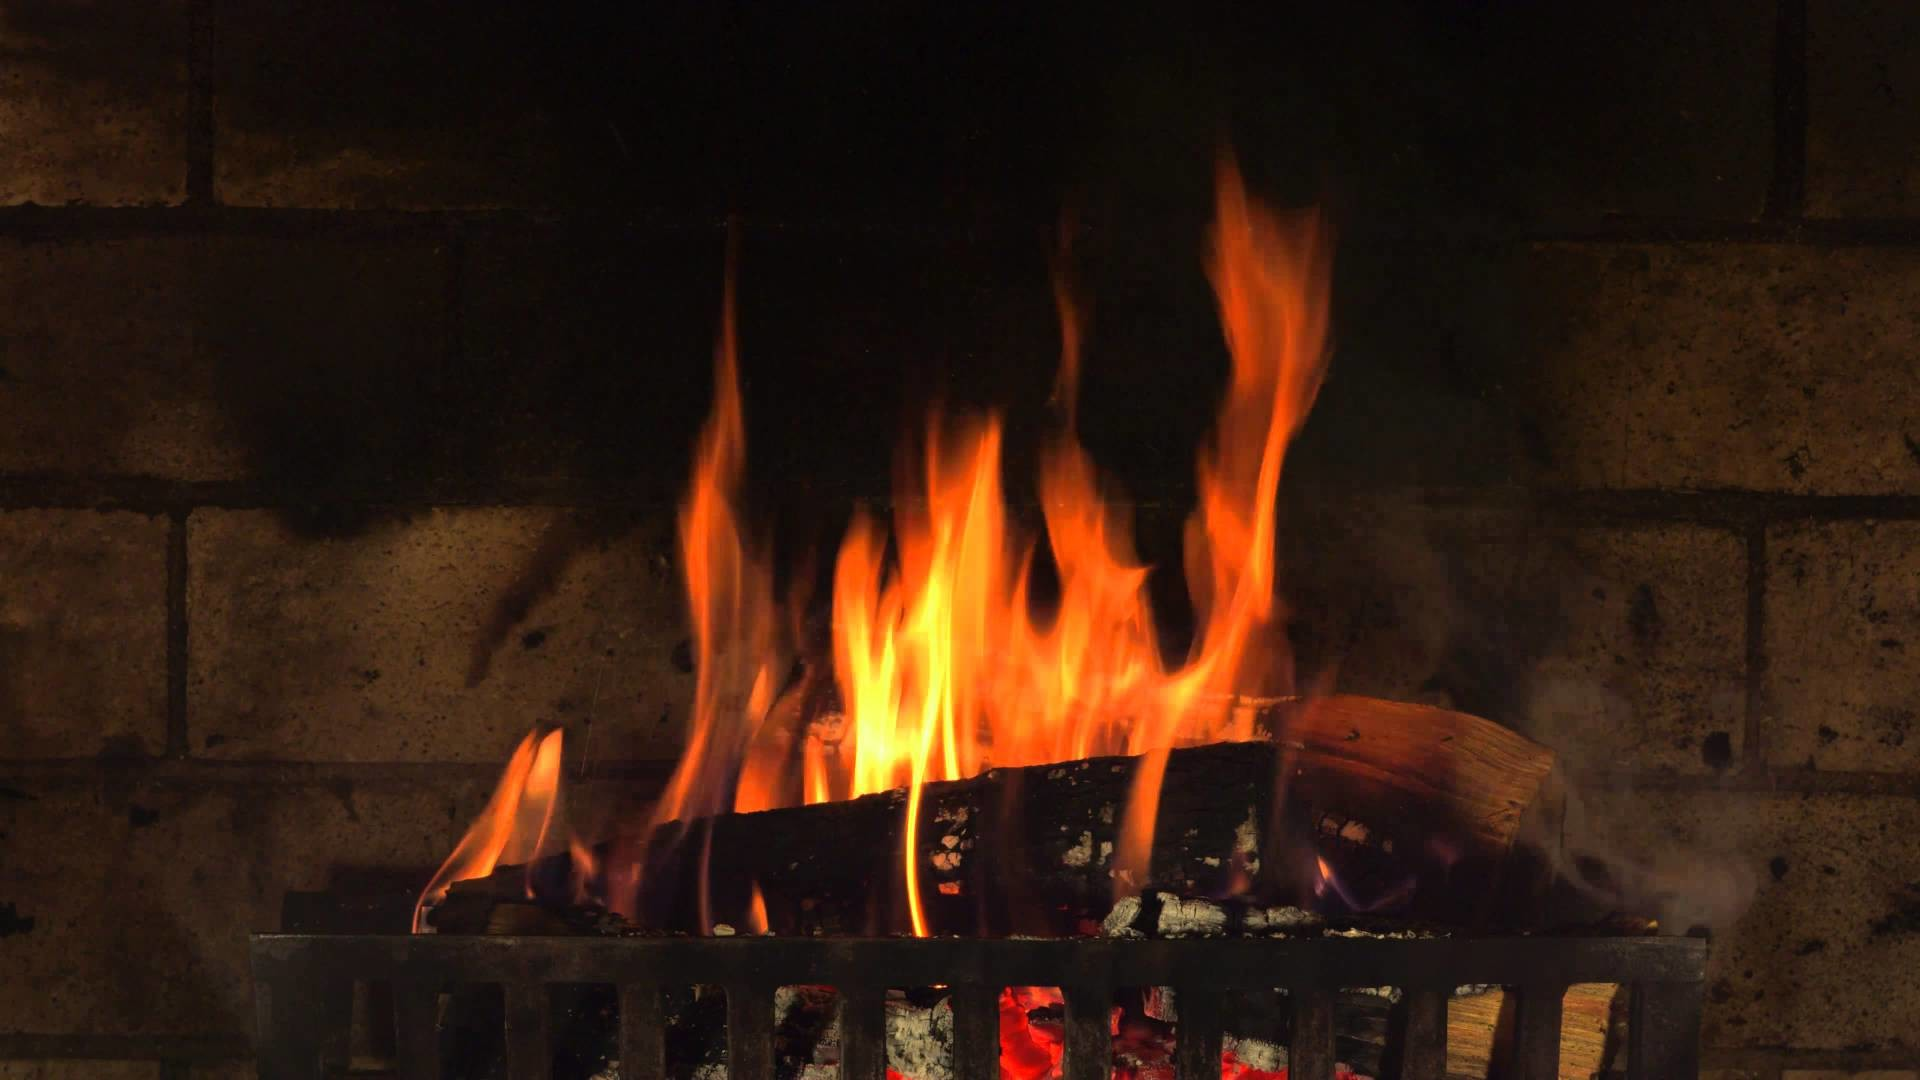 1920x1080 Animated Yule Log Wallpaper - yule wallpaper on wallpaperget